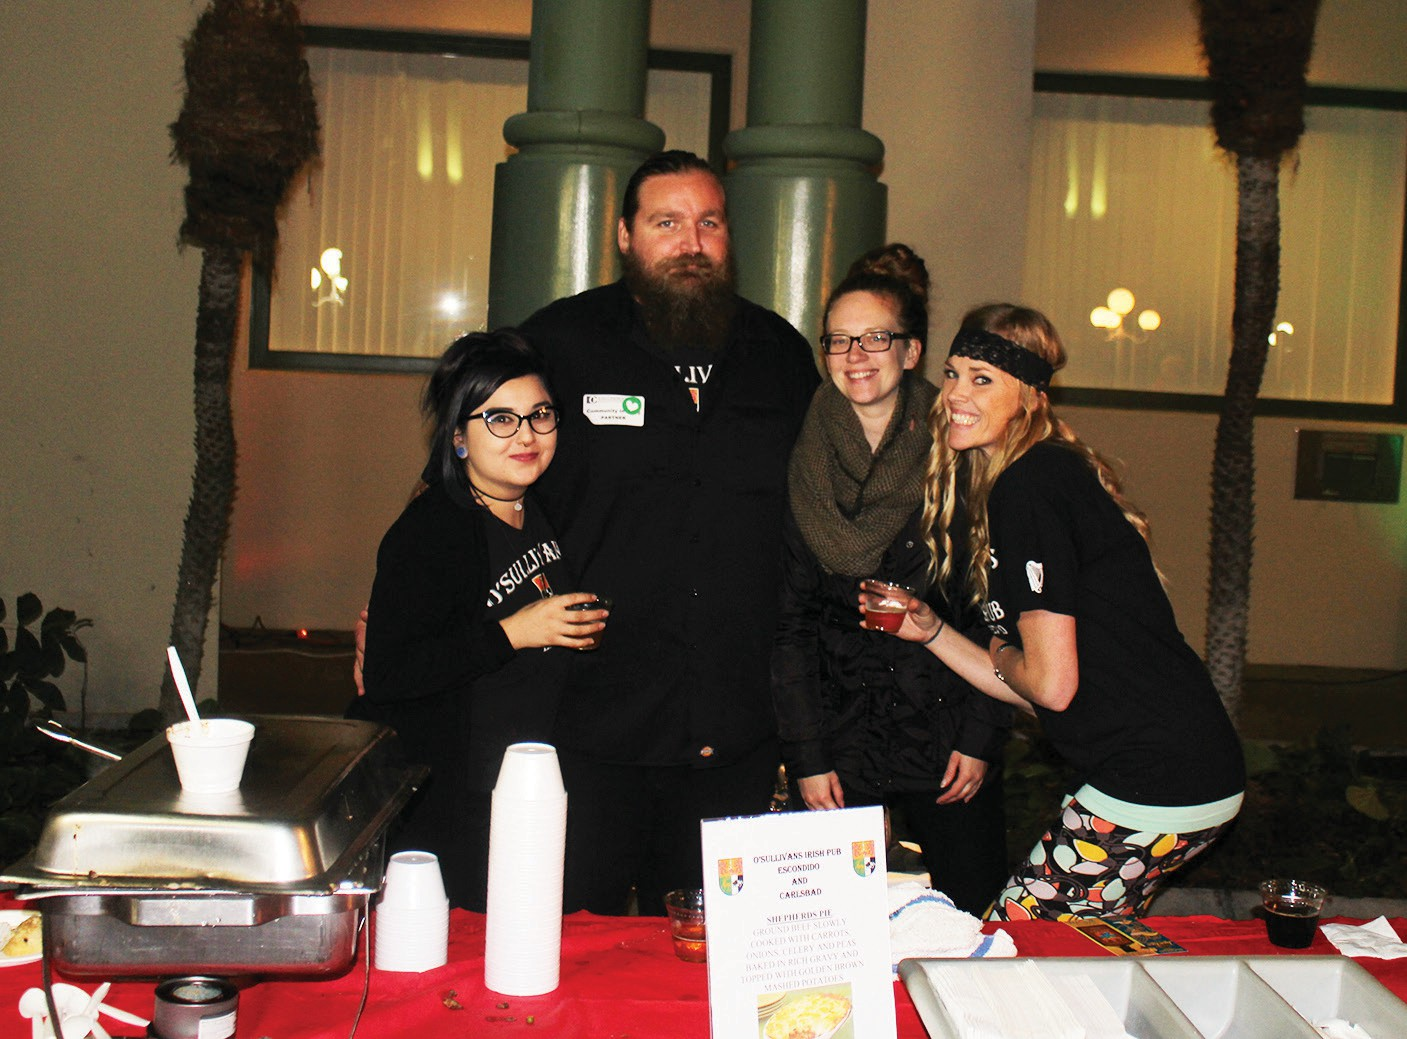 Above: The crew from O'Sullivan's, an Irishthemed pub and restaurant, served up savory samples of Shepherd's pie.